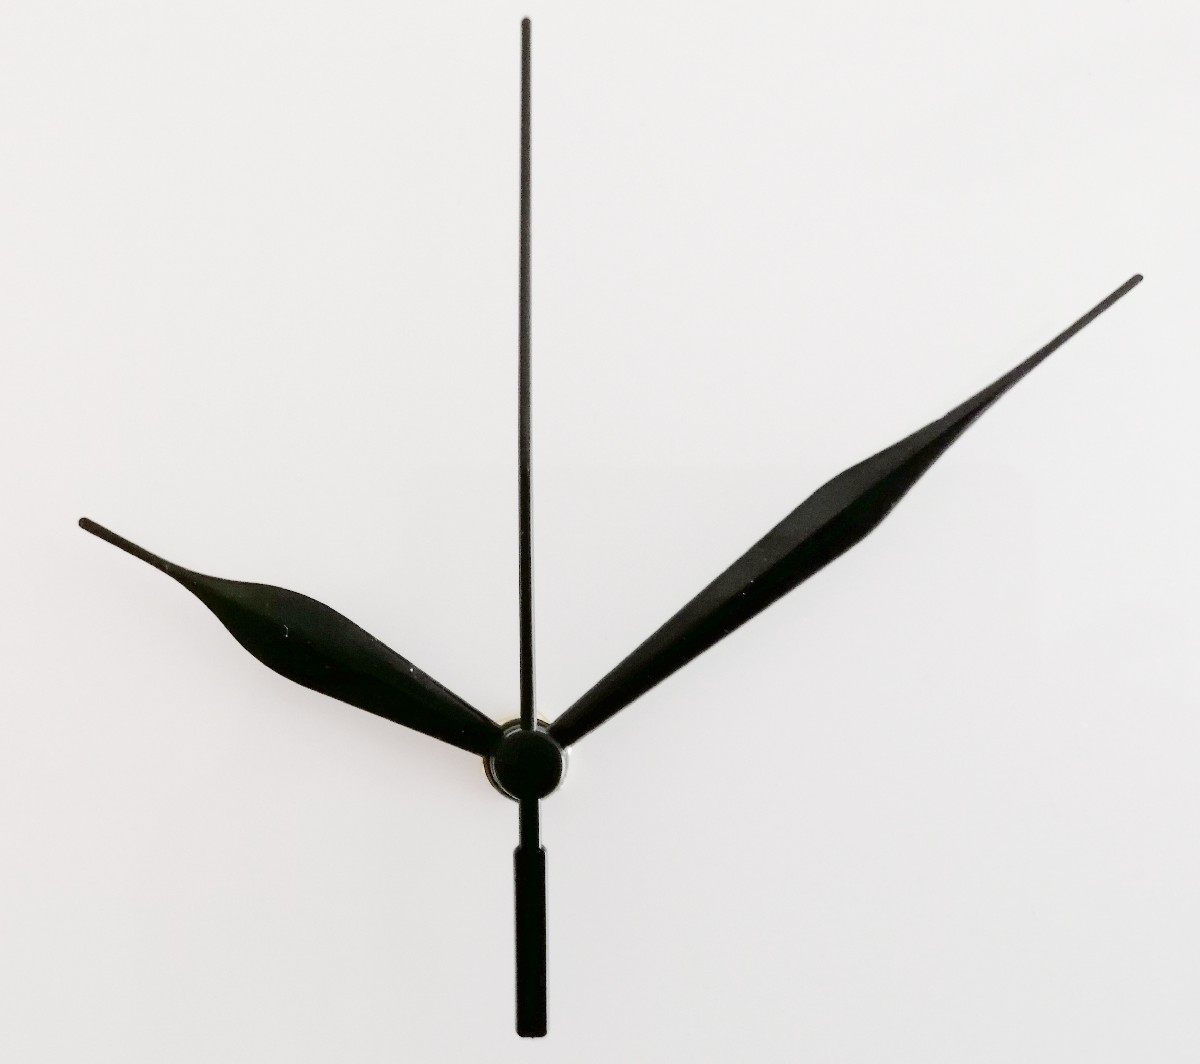 Clock movement with black hands